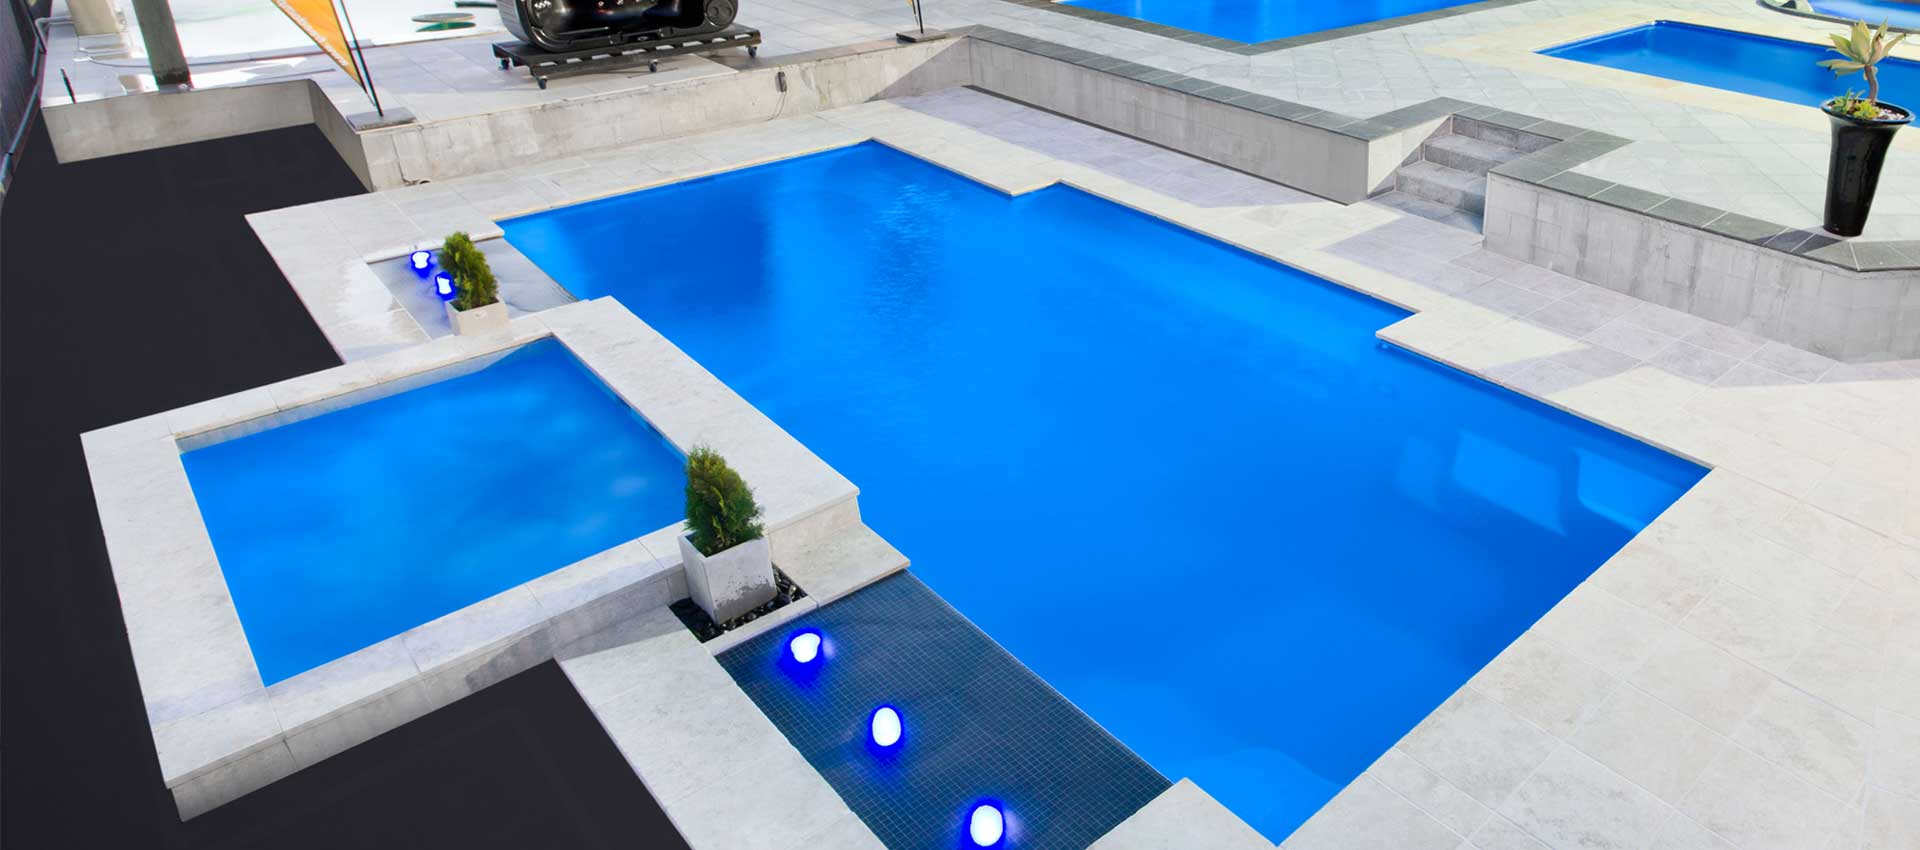 WHITE-GRANITE-PAVERS-around-a-swimming-pool-in-Melbourne